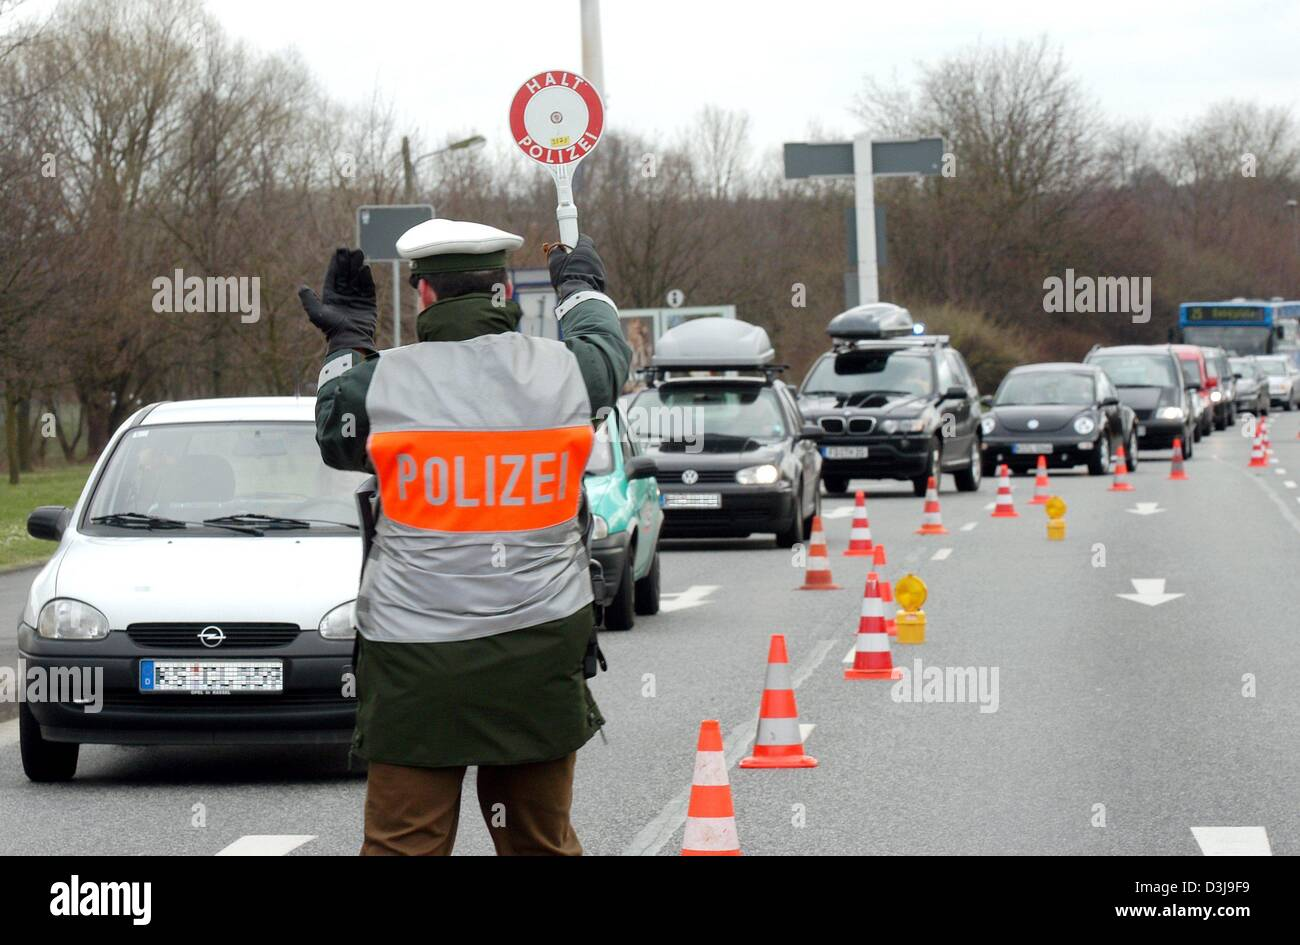 (dpa) - A police officer gestures as he instructs a car to pull over during a routine control on a road in Kassel, Stock Photo